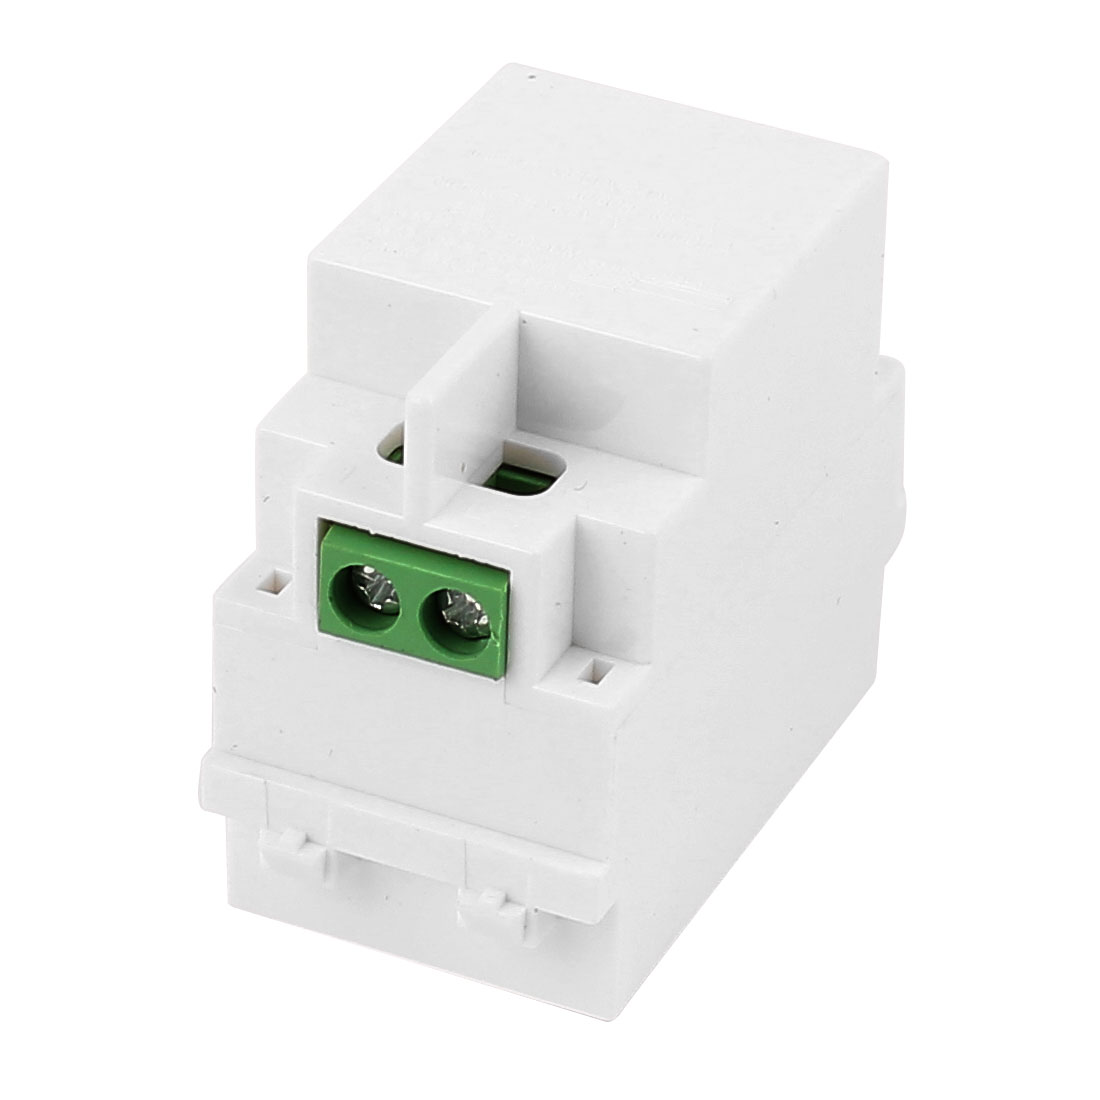 4.5V-7V USB DC Charing Ports Charger Modular Socket for 128 Wall Plate Panel